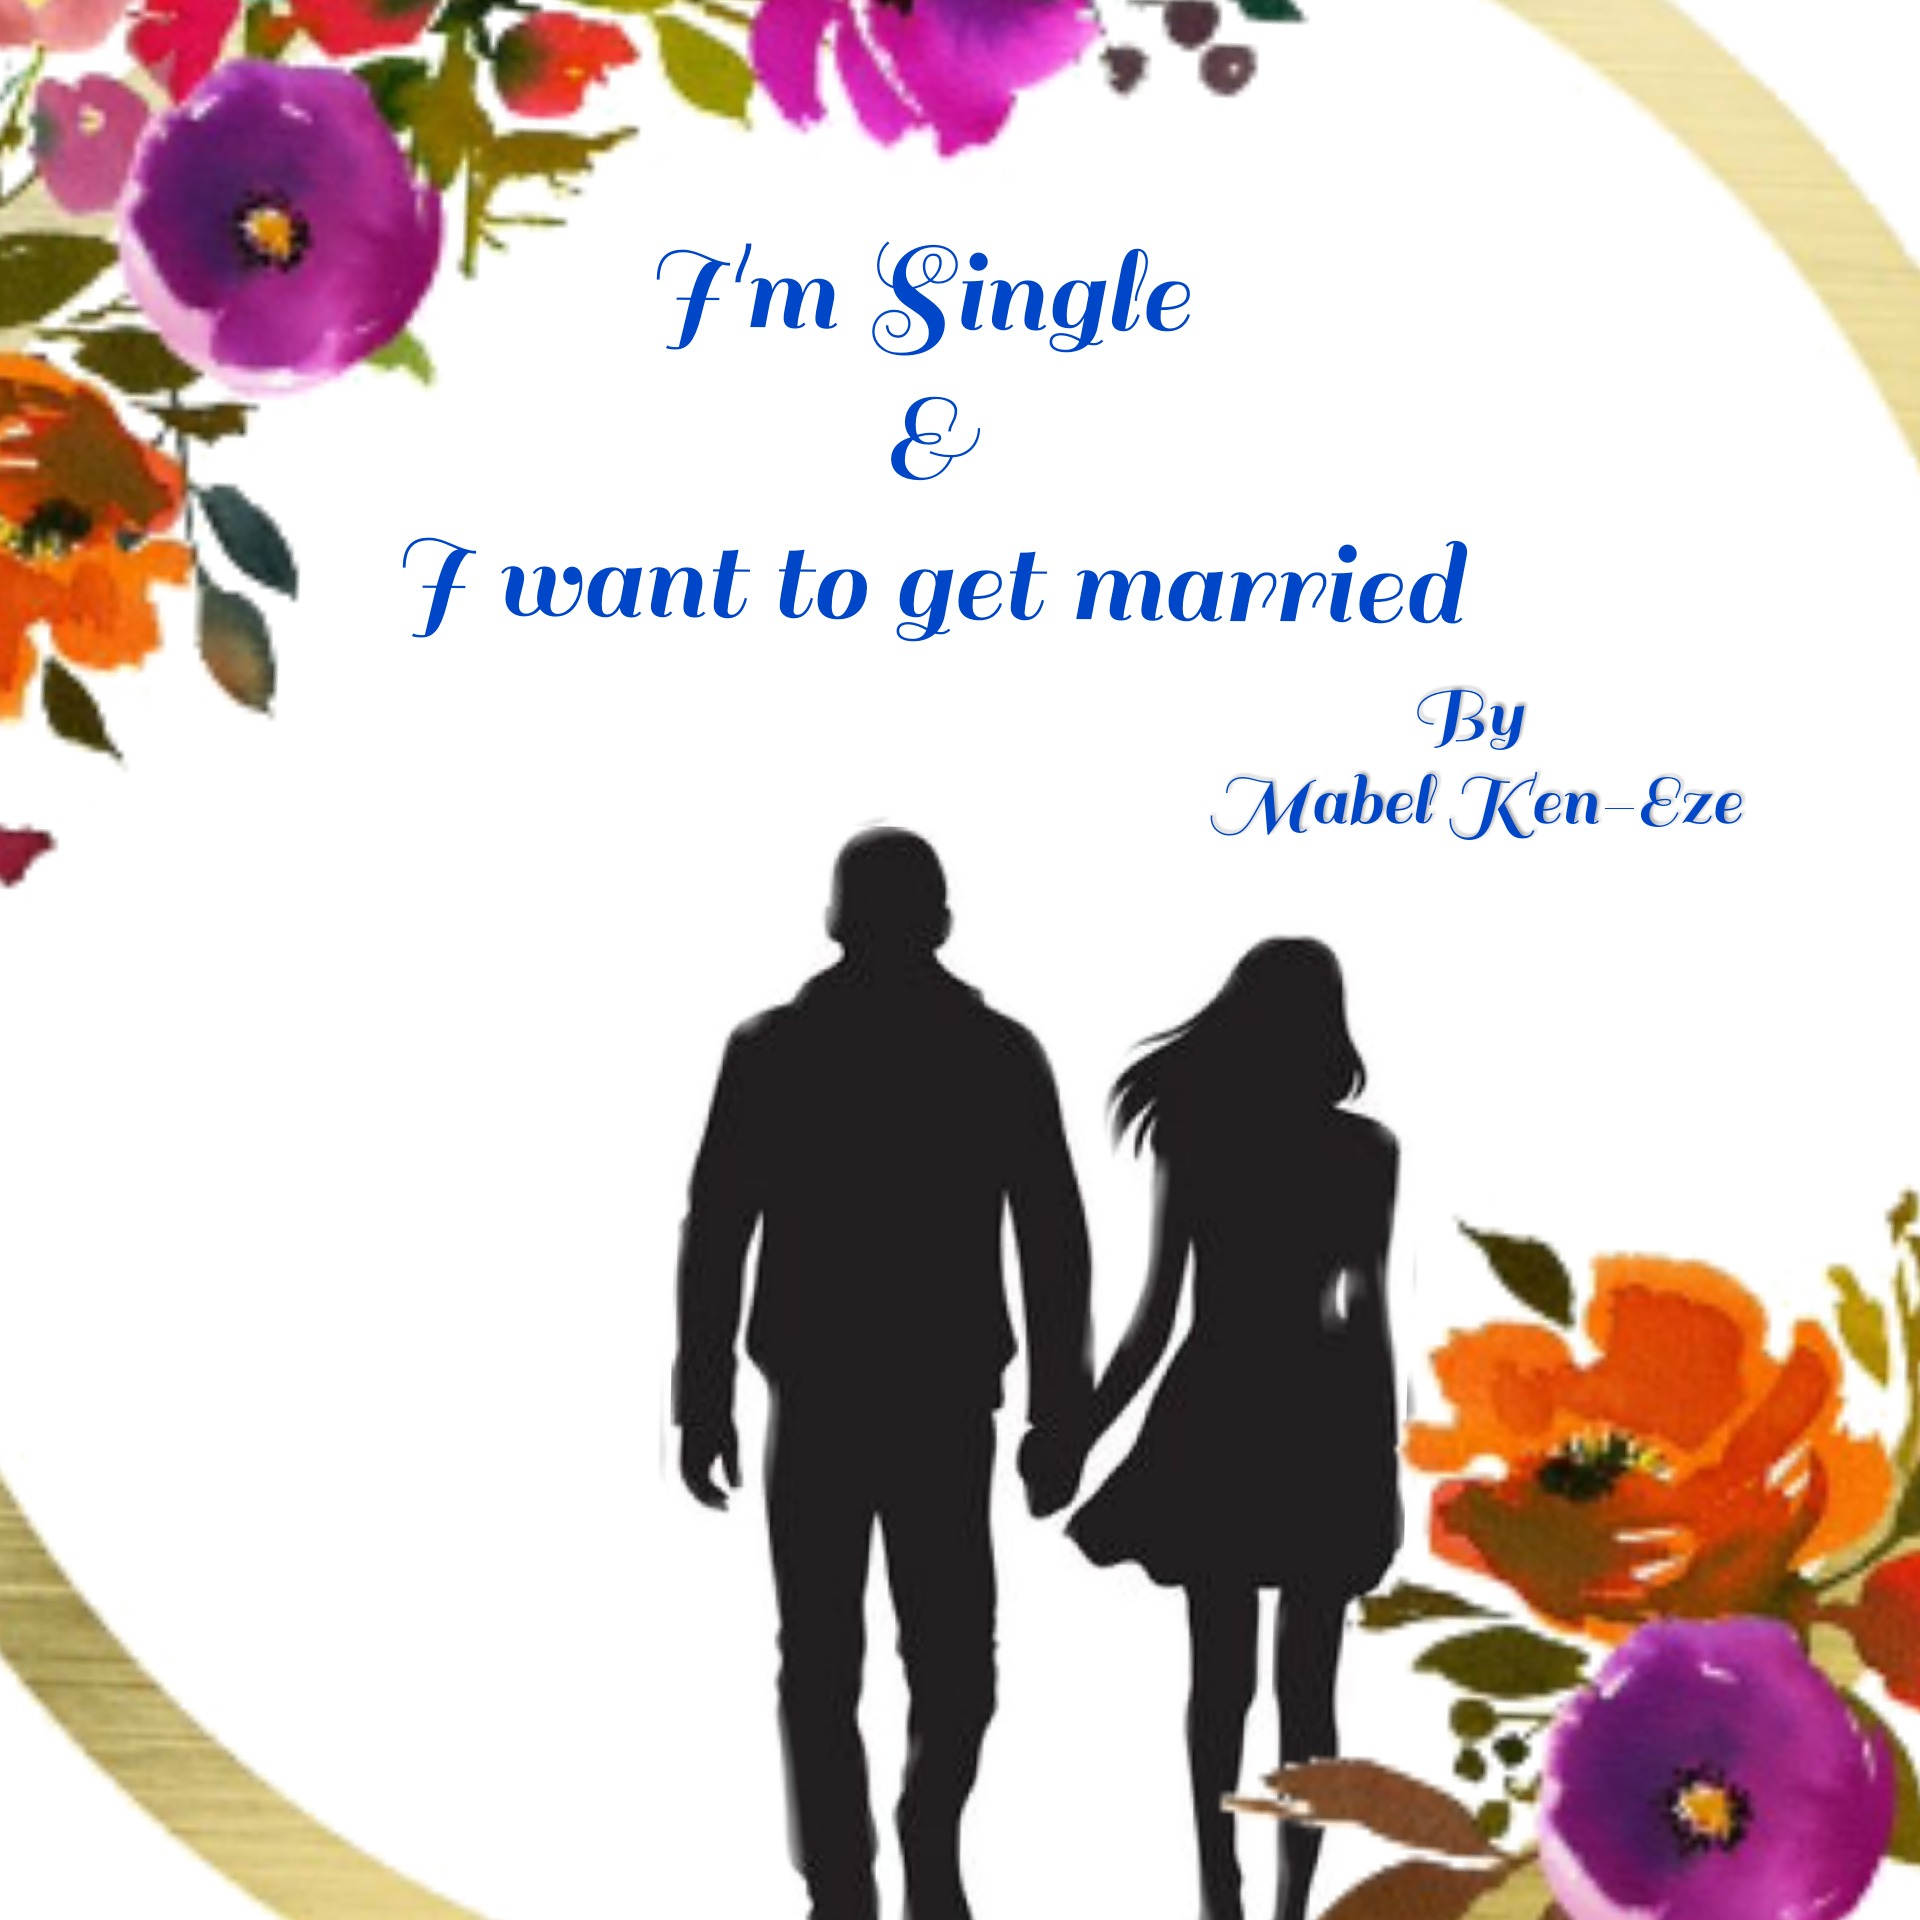 I'm  single & I want to get married